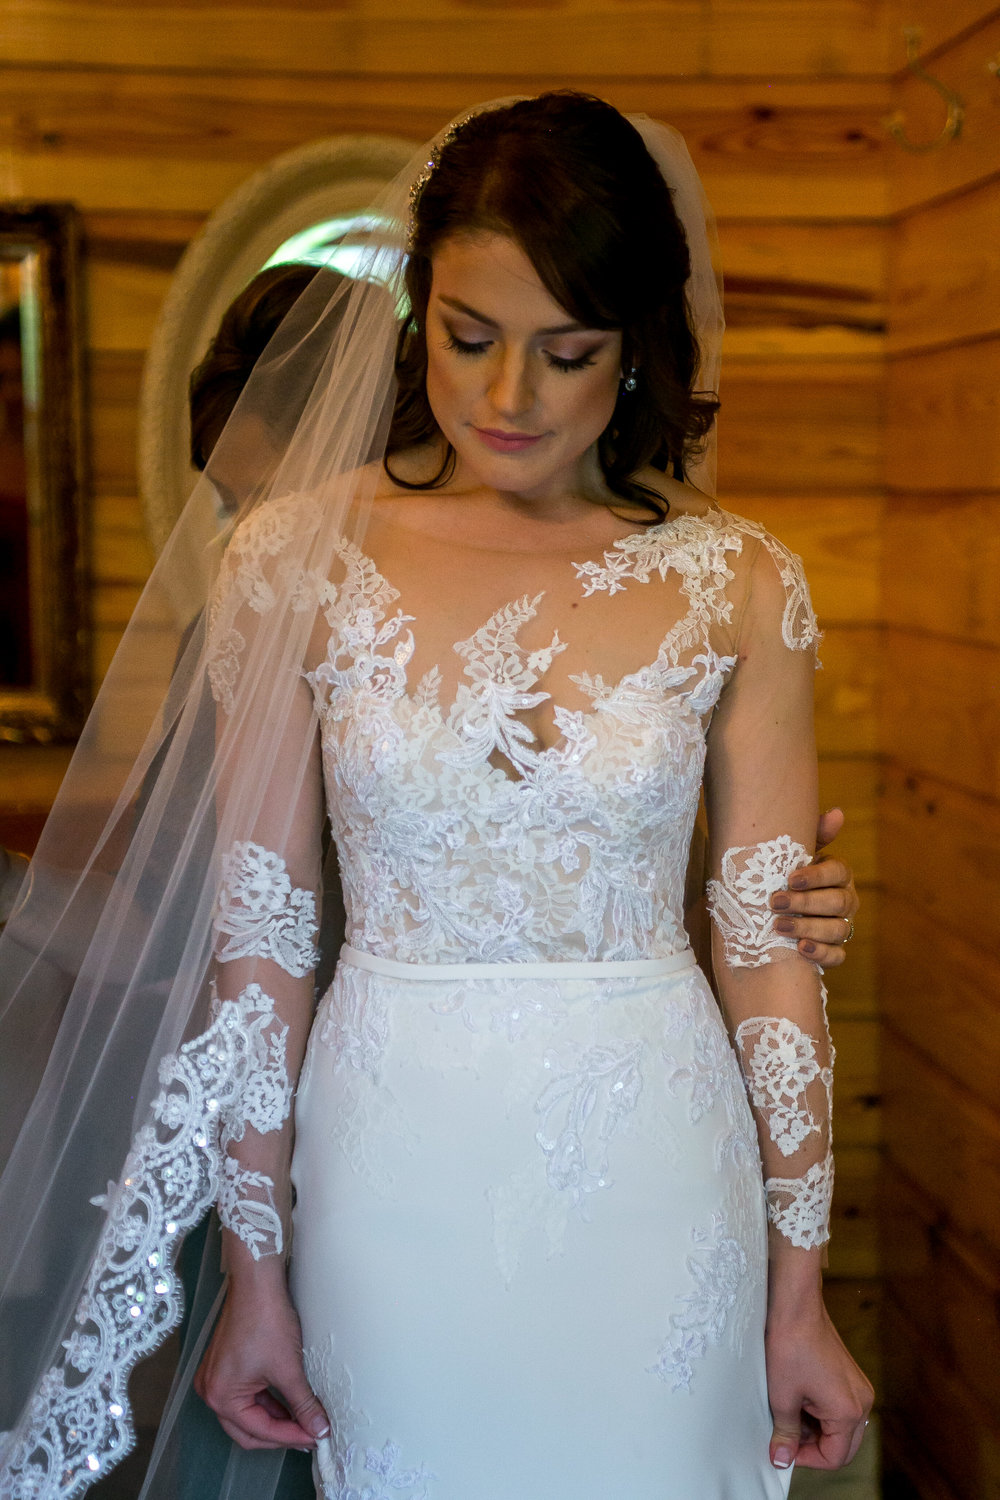 Wendy chose the 'Drenoa' gown by Pronovias. Keeping her bridal look romantic, she added custom sleeves in alterations and paired it with a lace cathedral veil. How gorgeous is she?